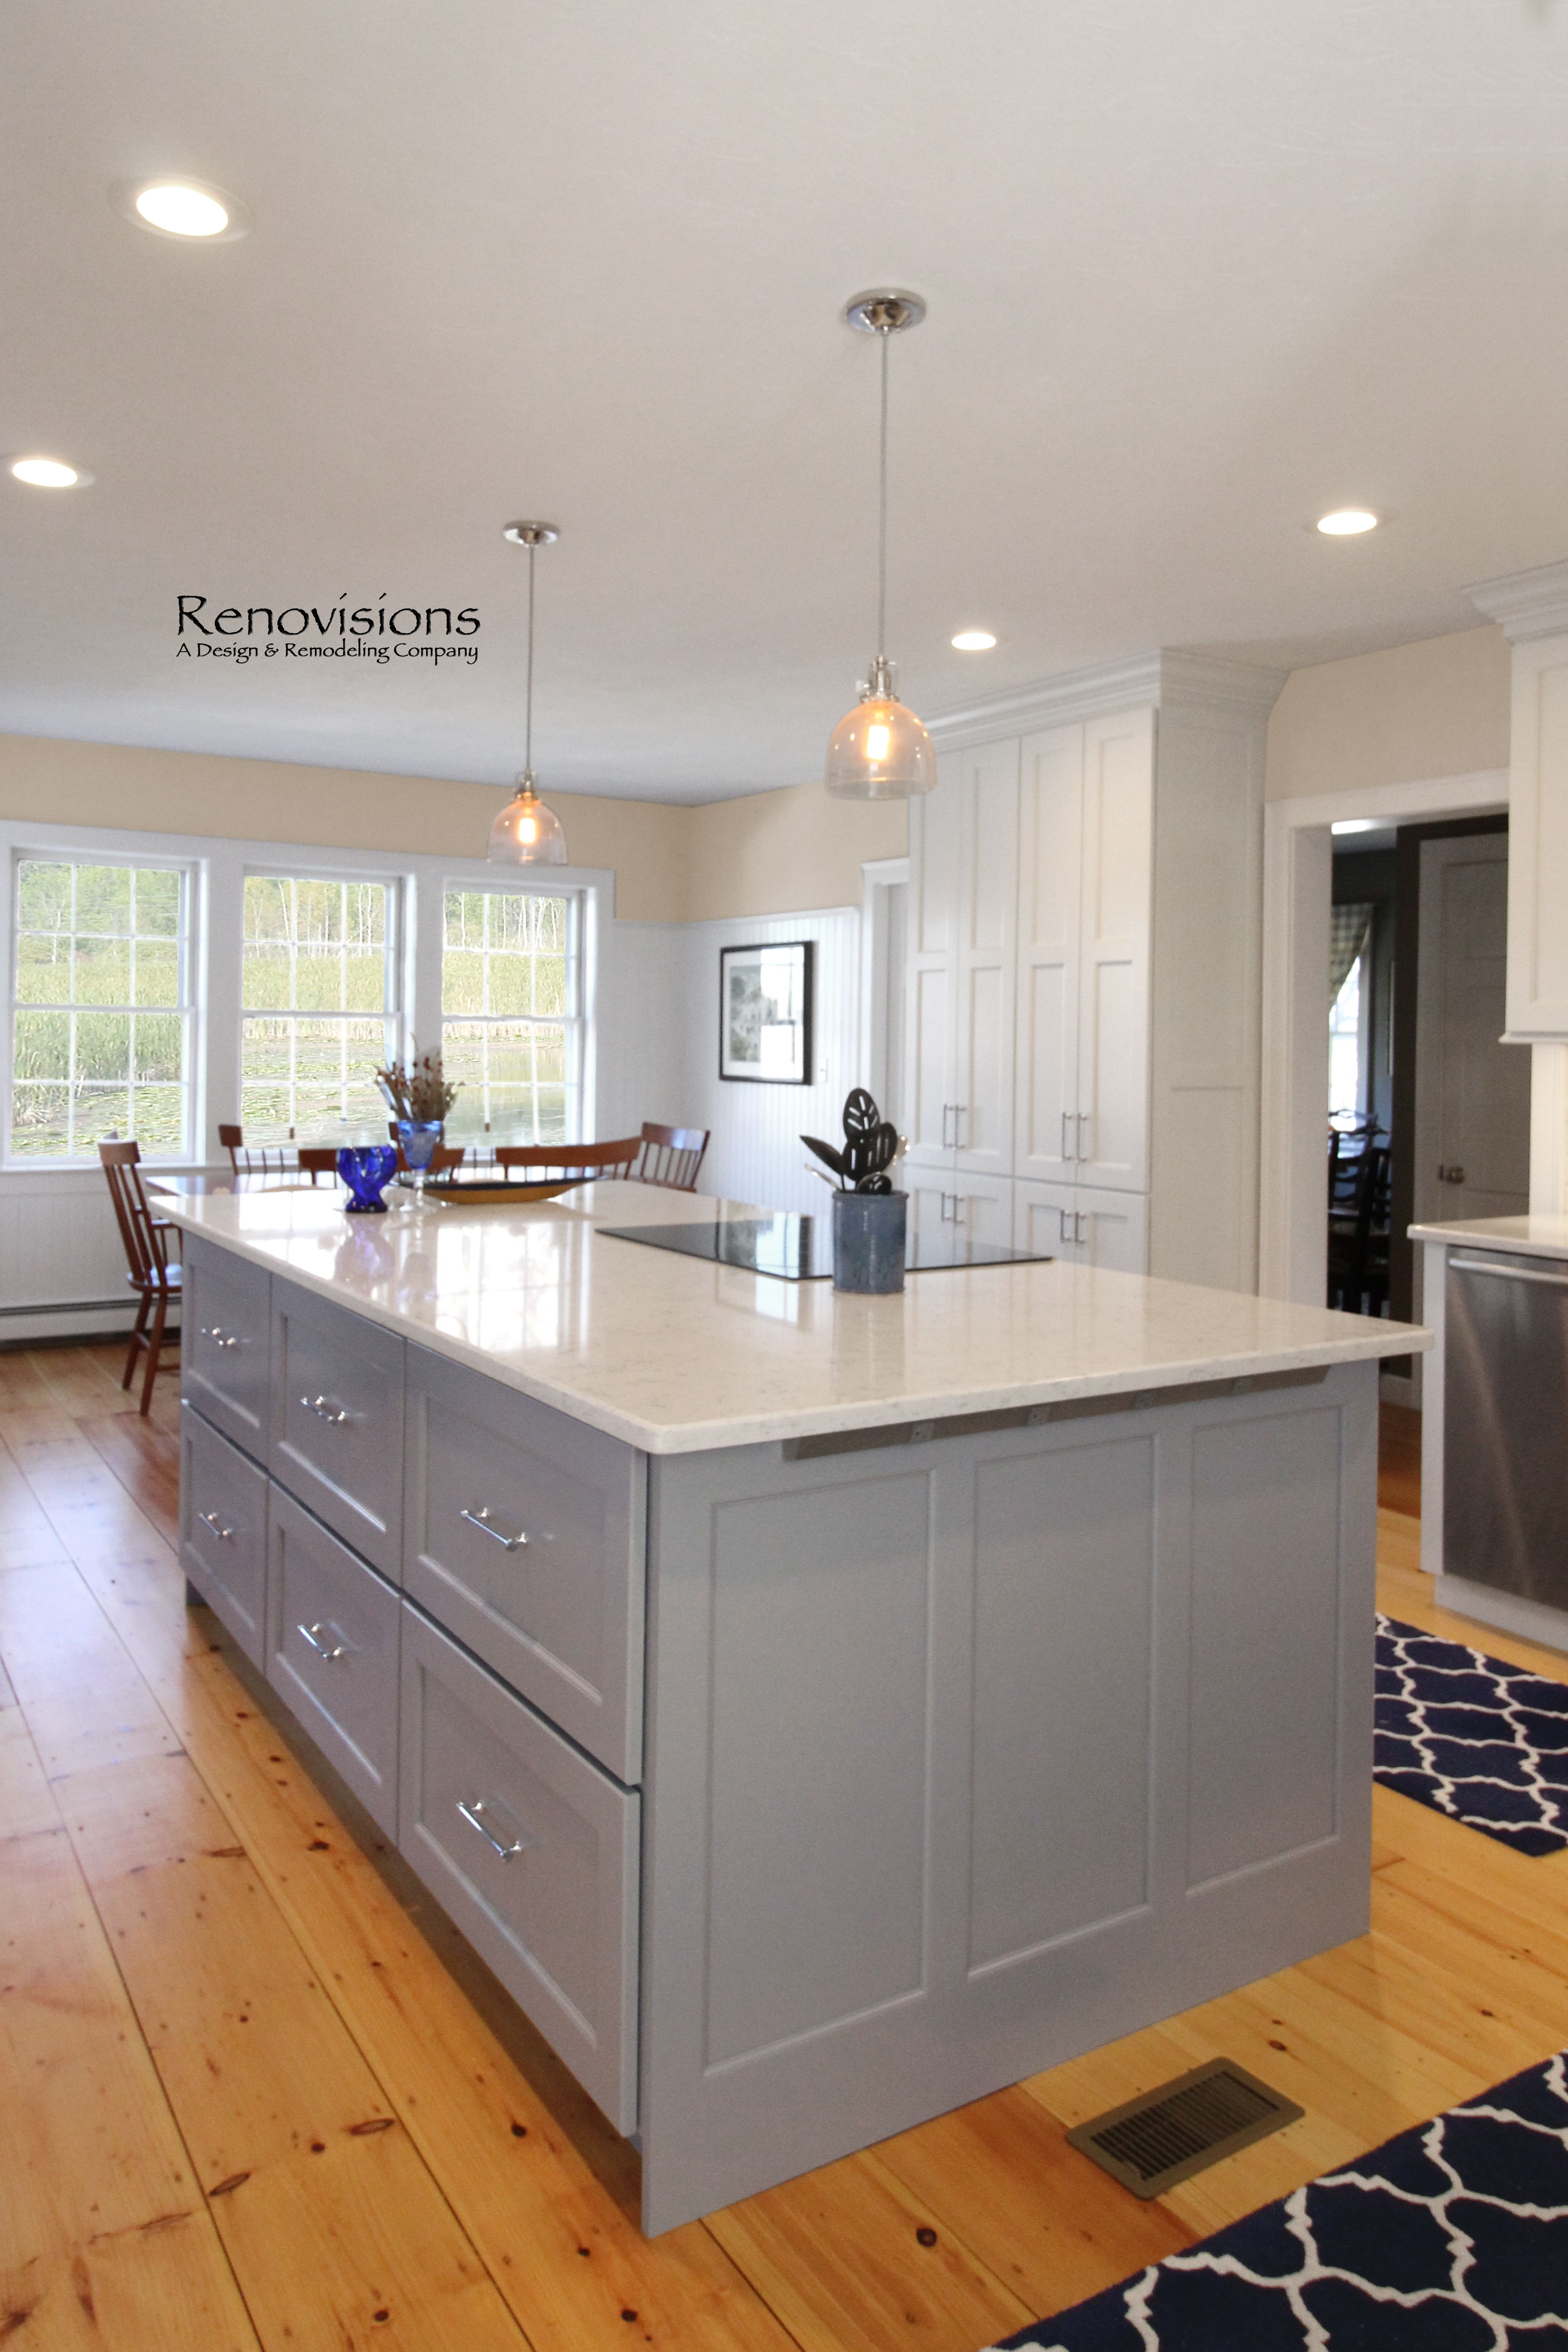 A completed kitchen remodel by Renovisions Kitchen